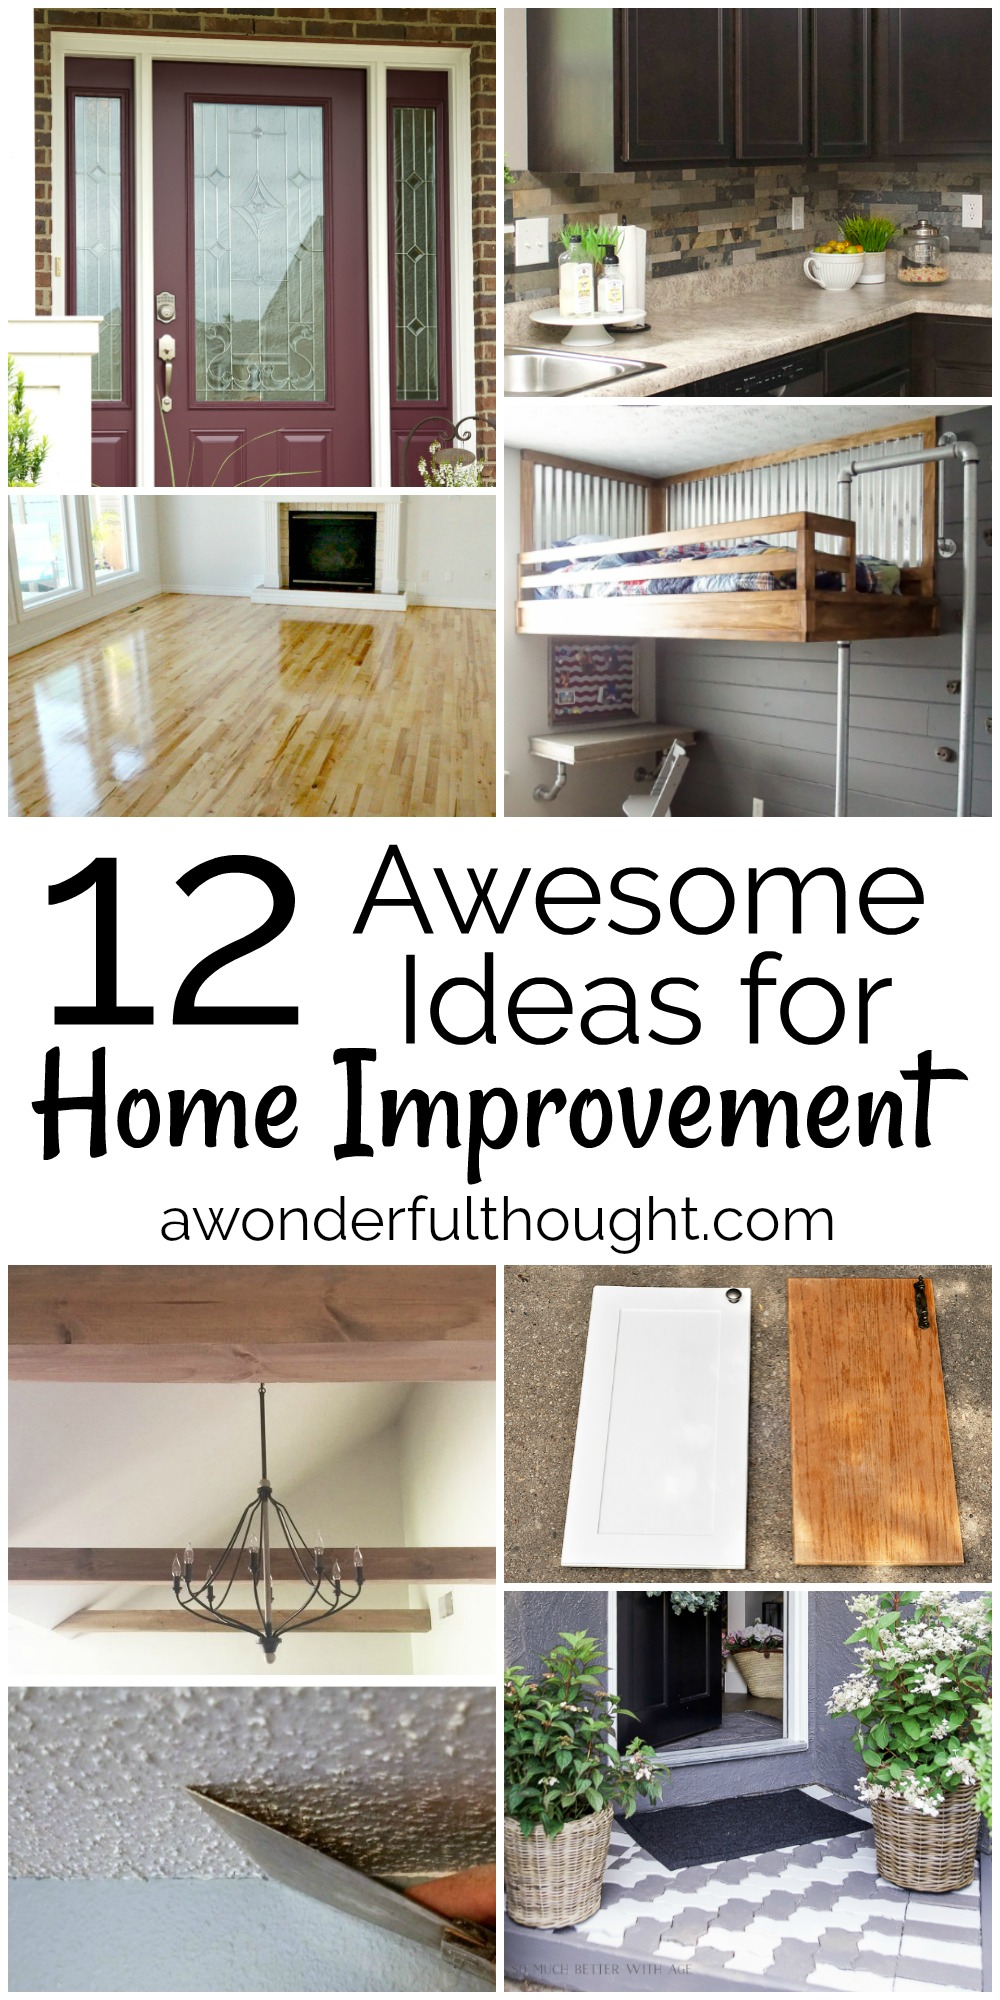 12 Awesome Home Improvement Ideas Great DIY